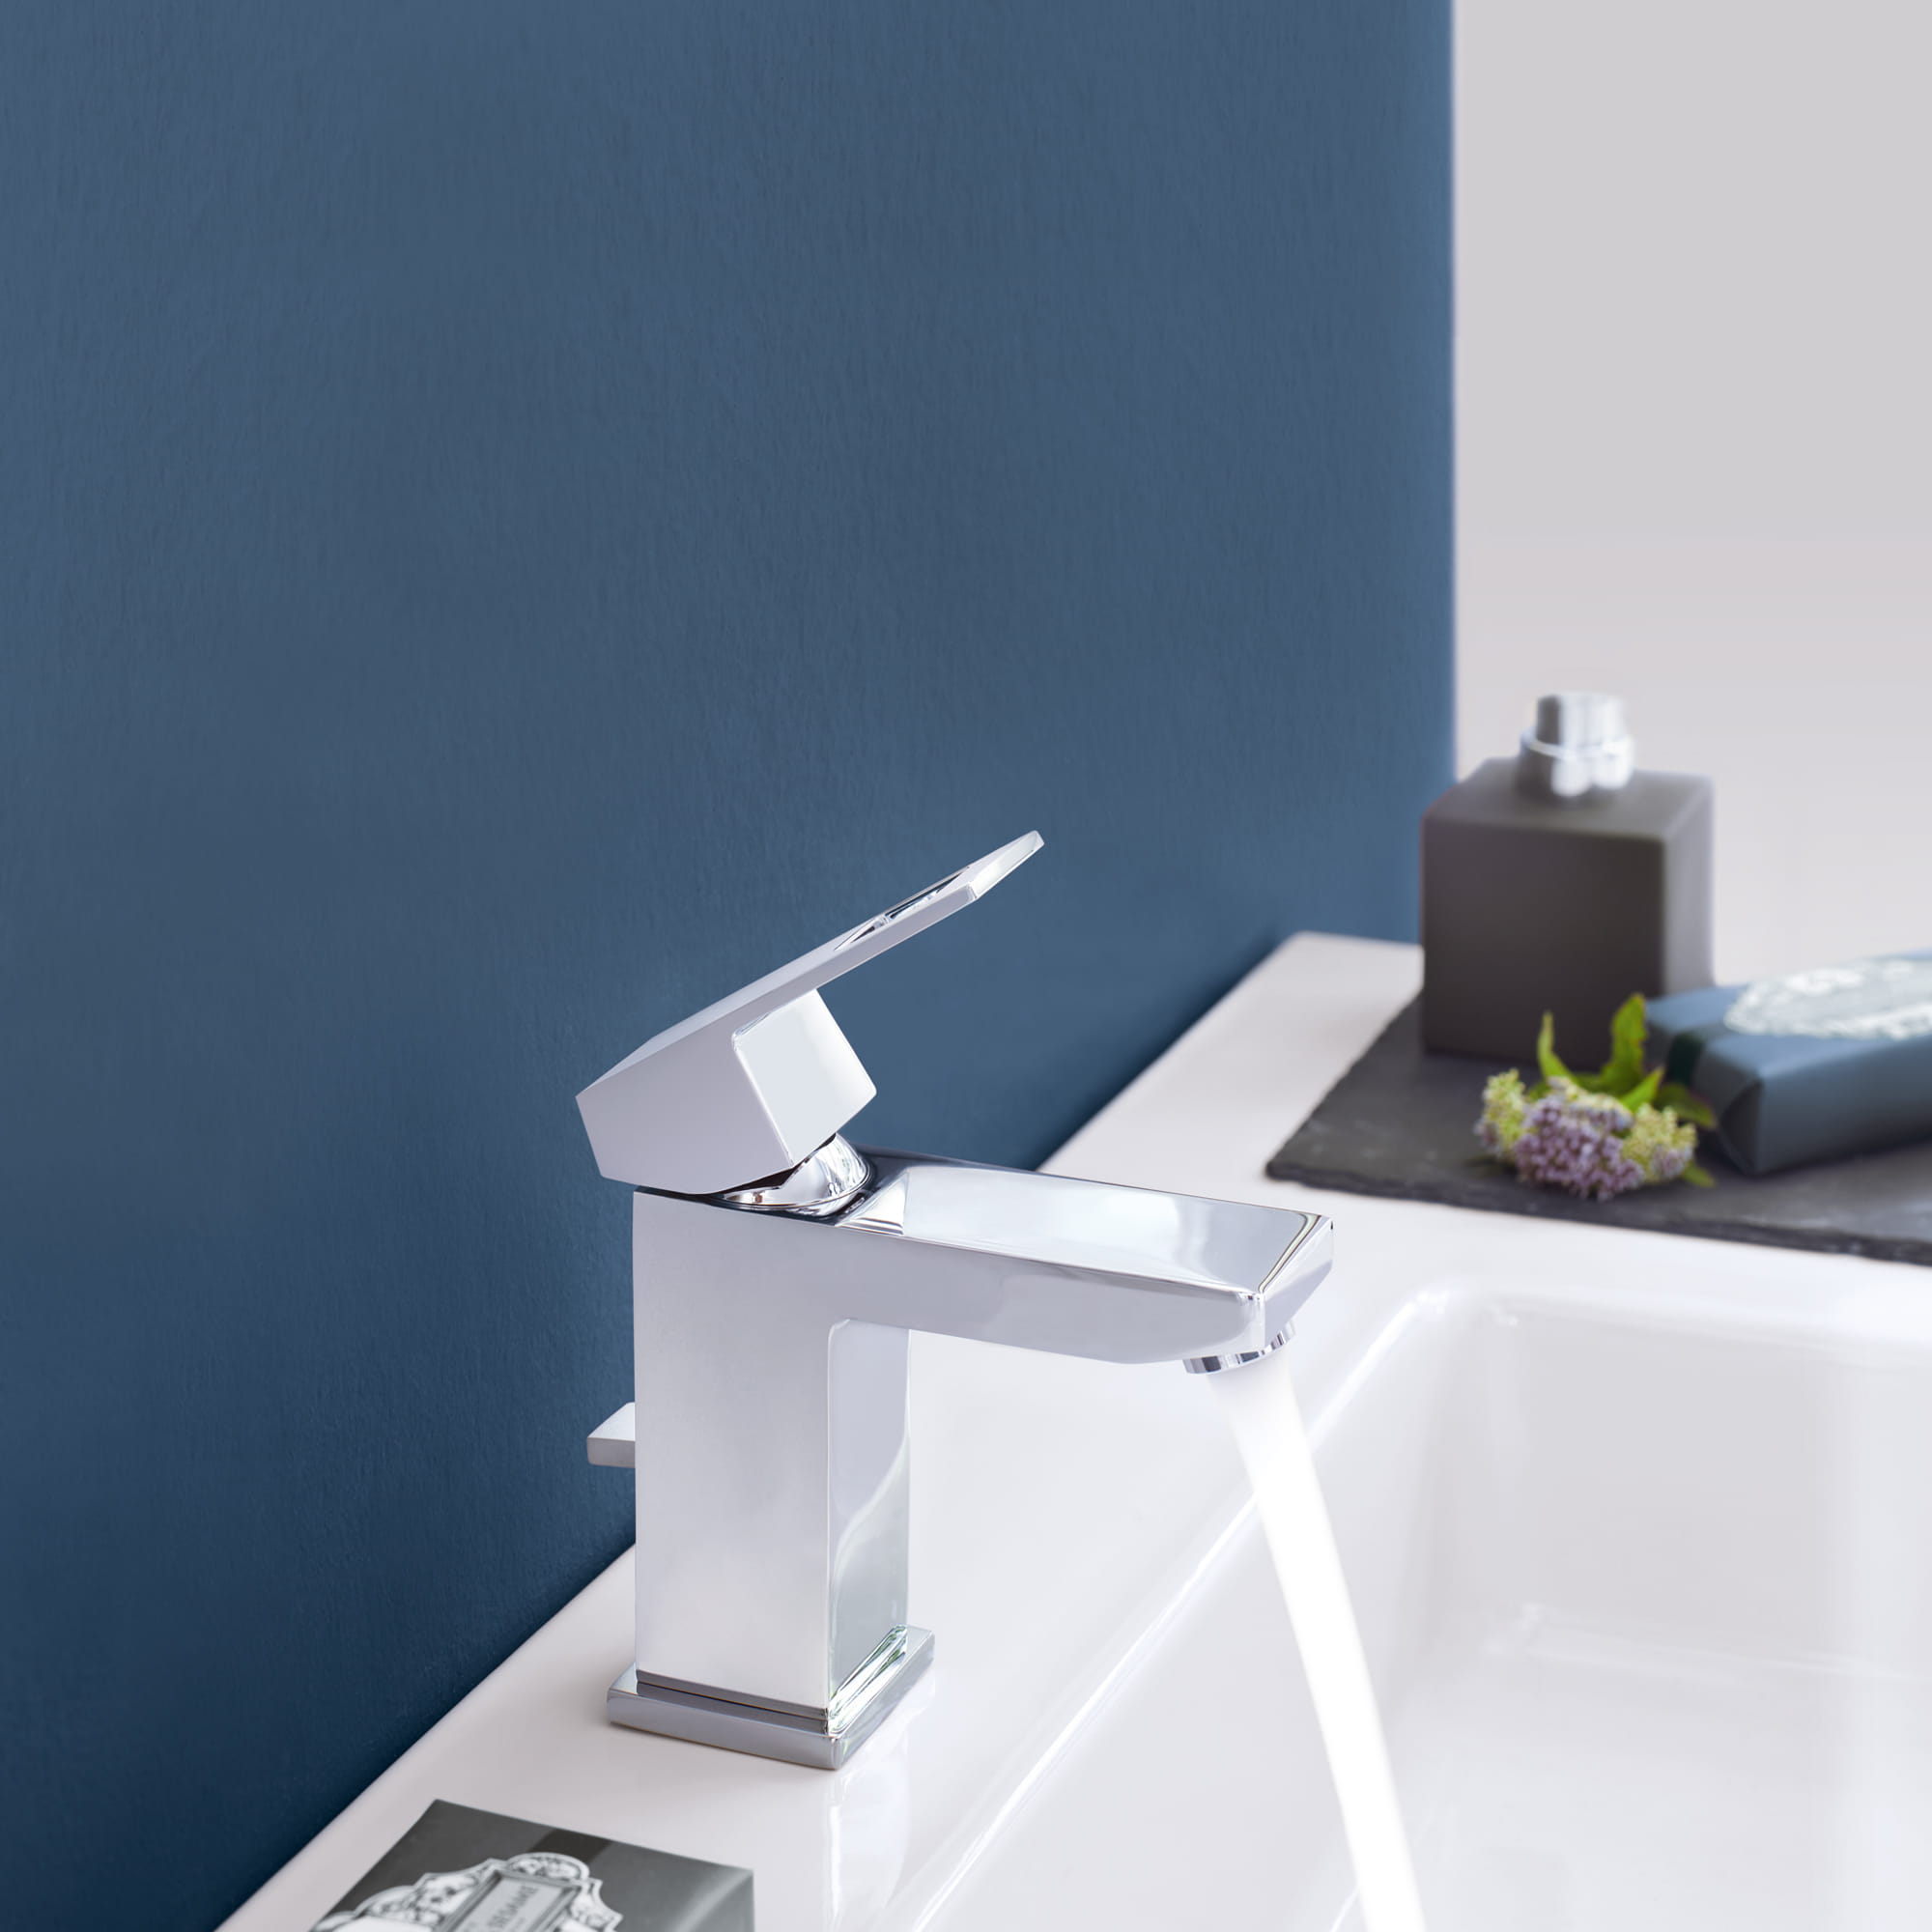 GROHE Eurocube Faucet with blue background